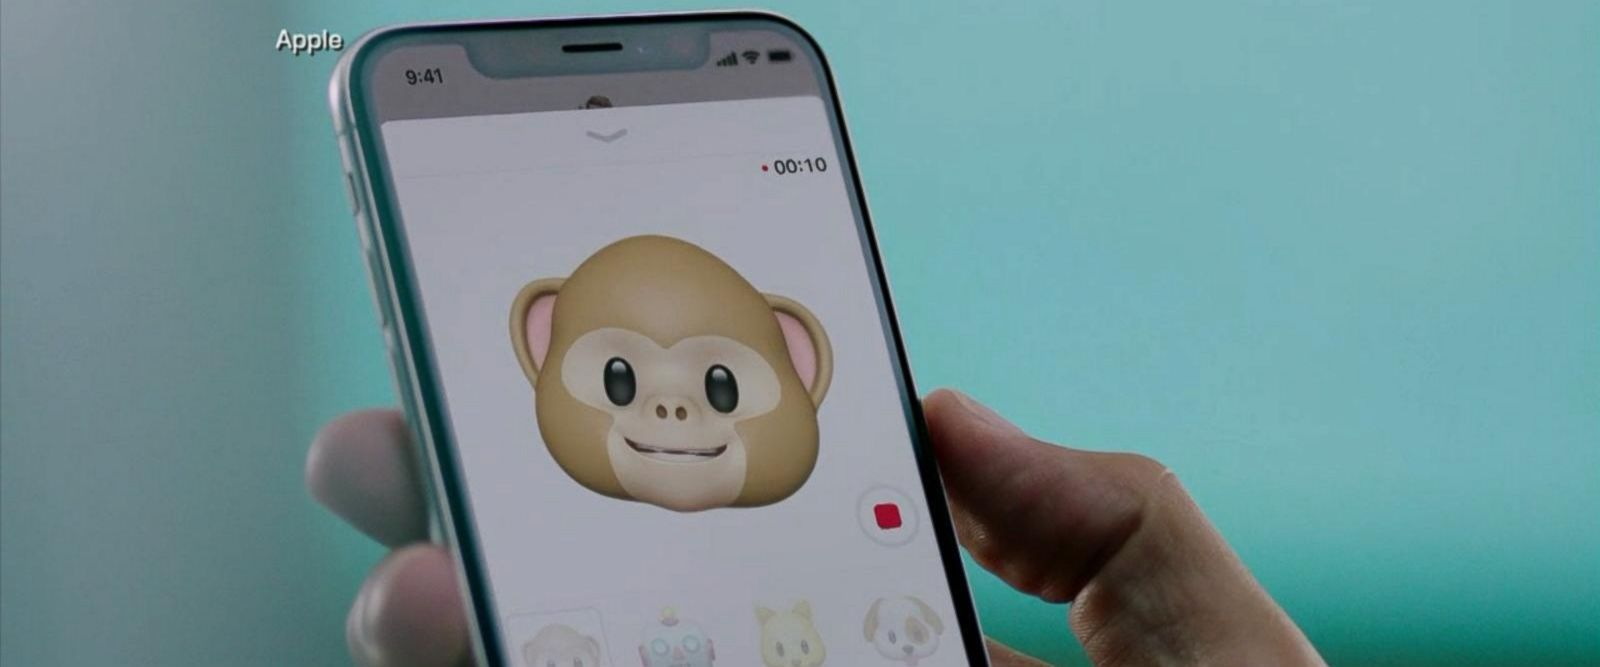 VIDEO: Apple iOS 11 operating system will start rolling out to iPhone users